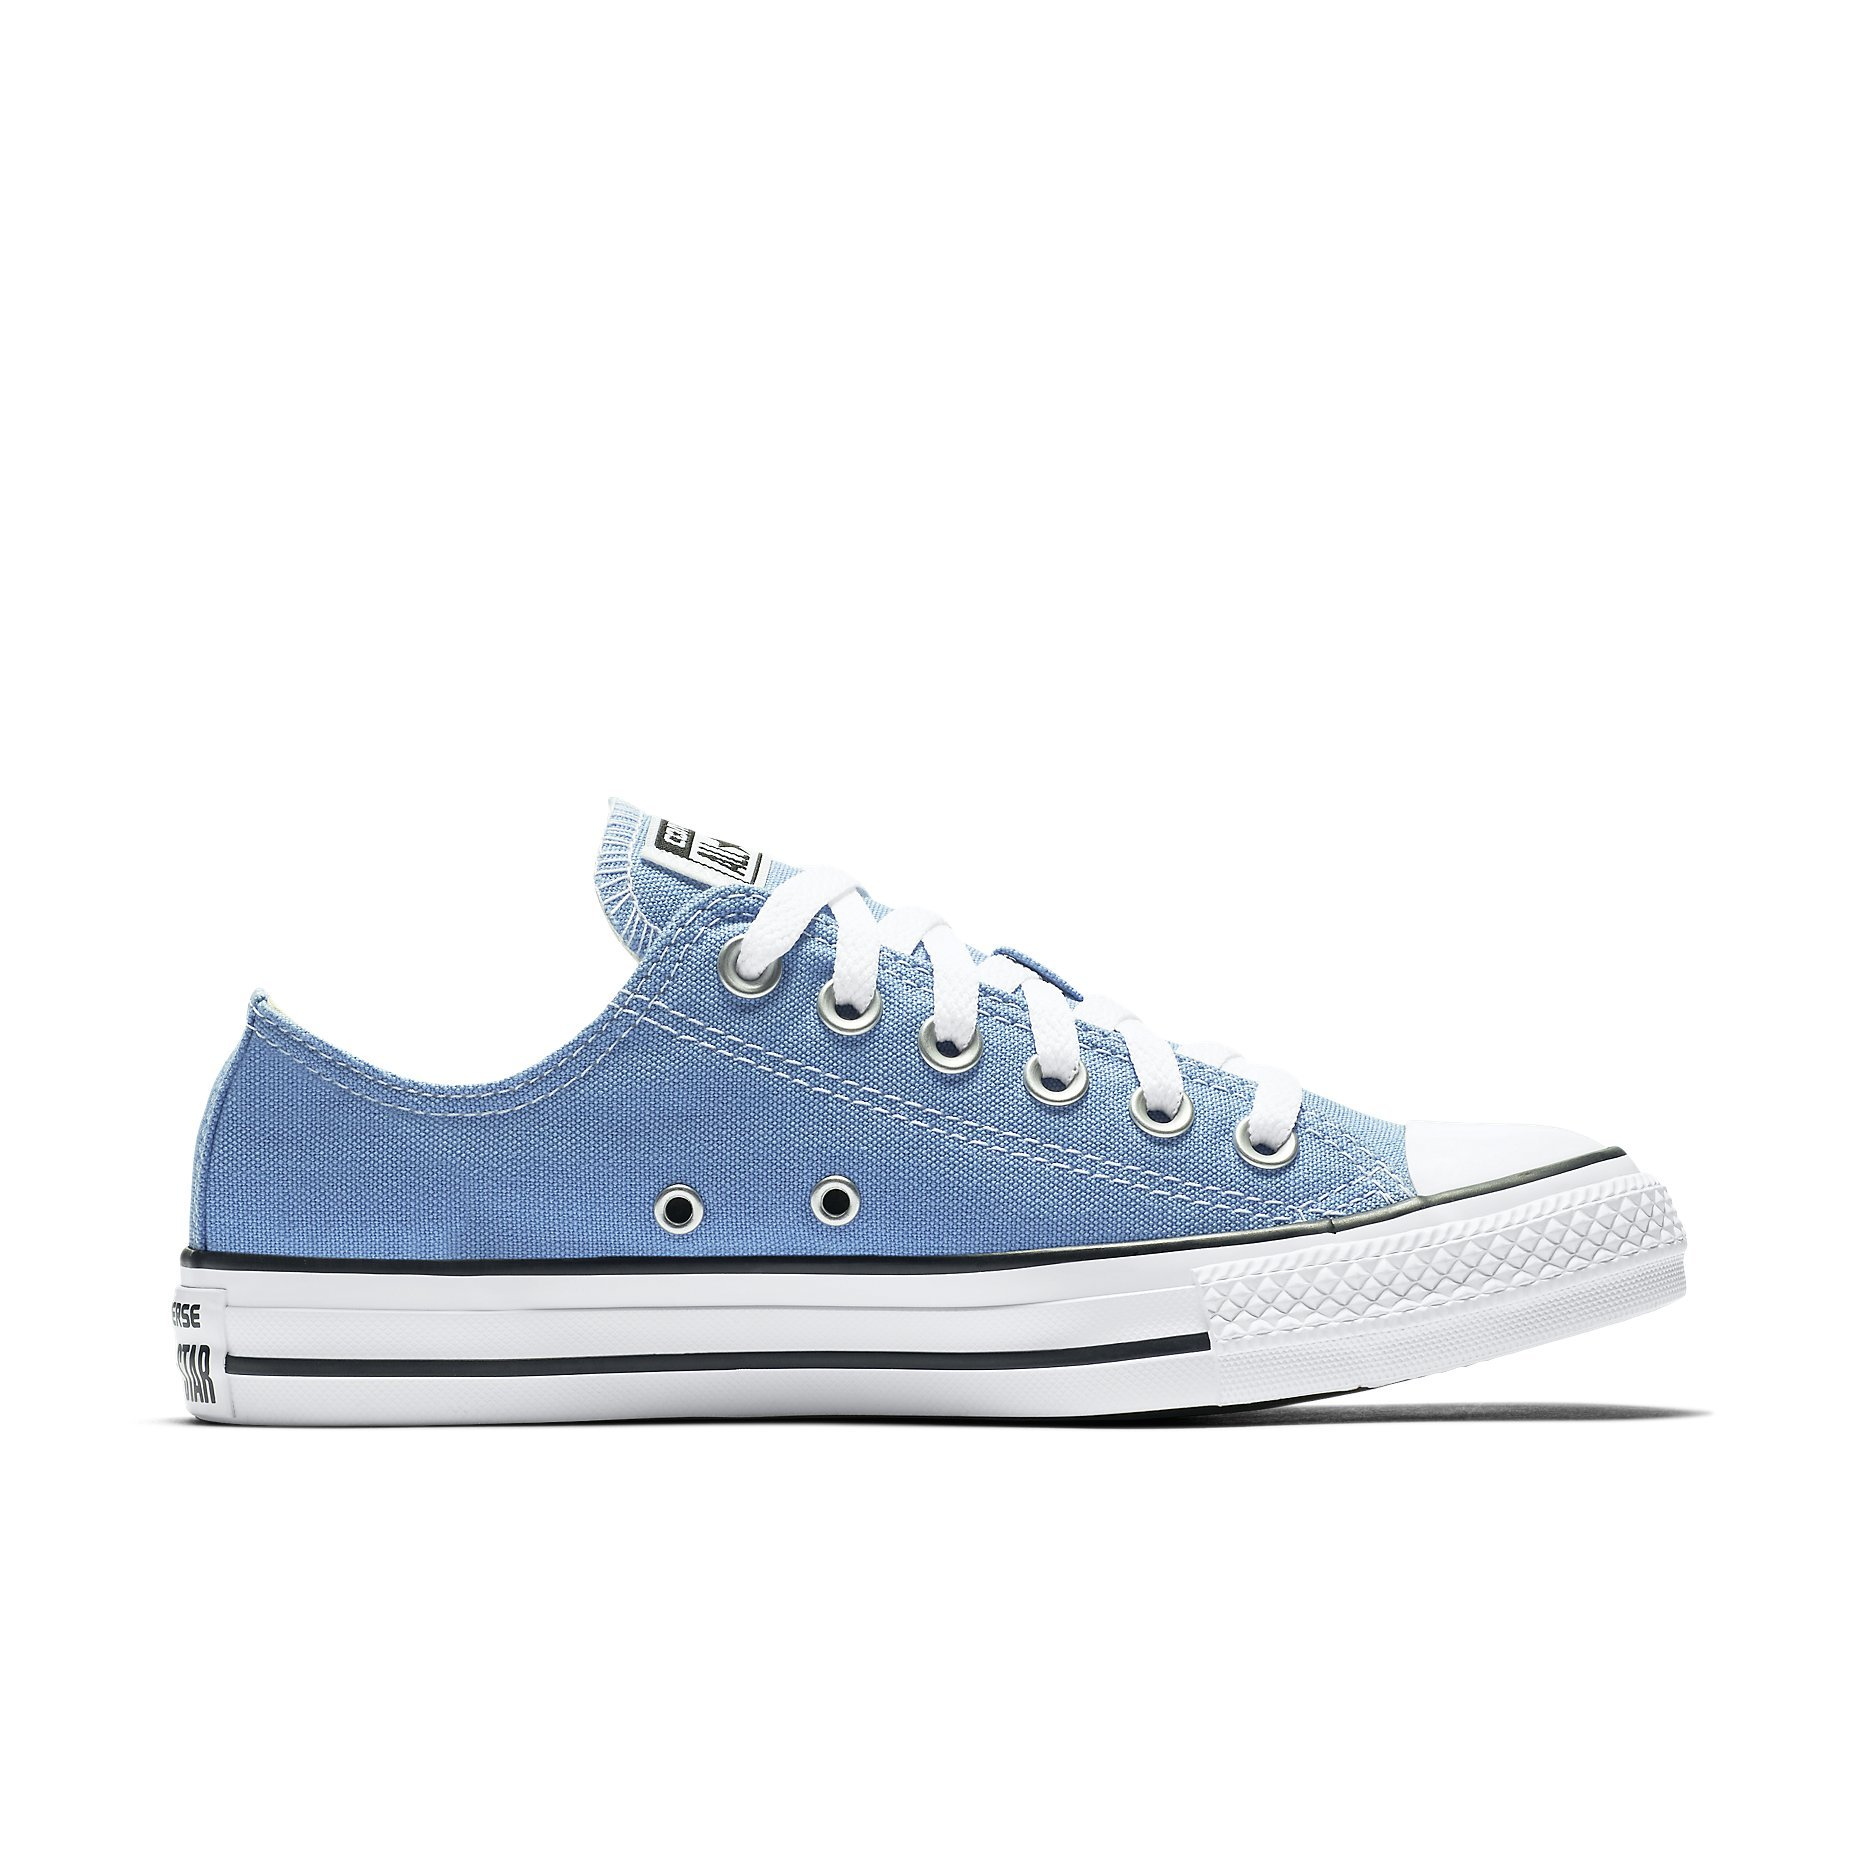 Converse 157650F : Chuck Taylor Allstar Ox Unisex Pioneer Blue (Boy Girl Men 5.5 = Women 7.5) by Converse